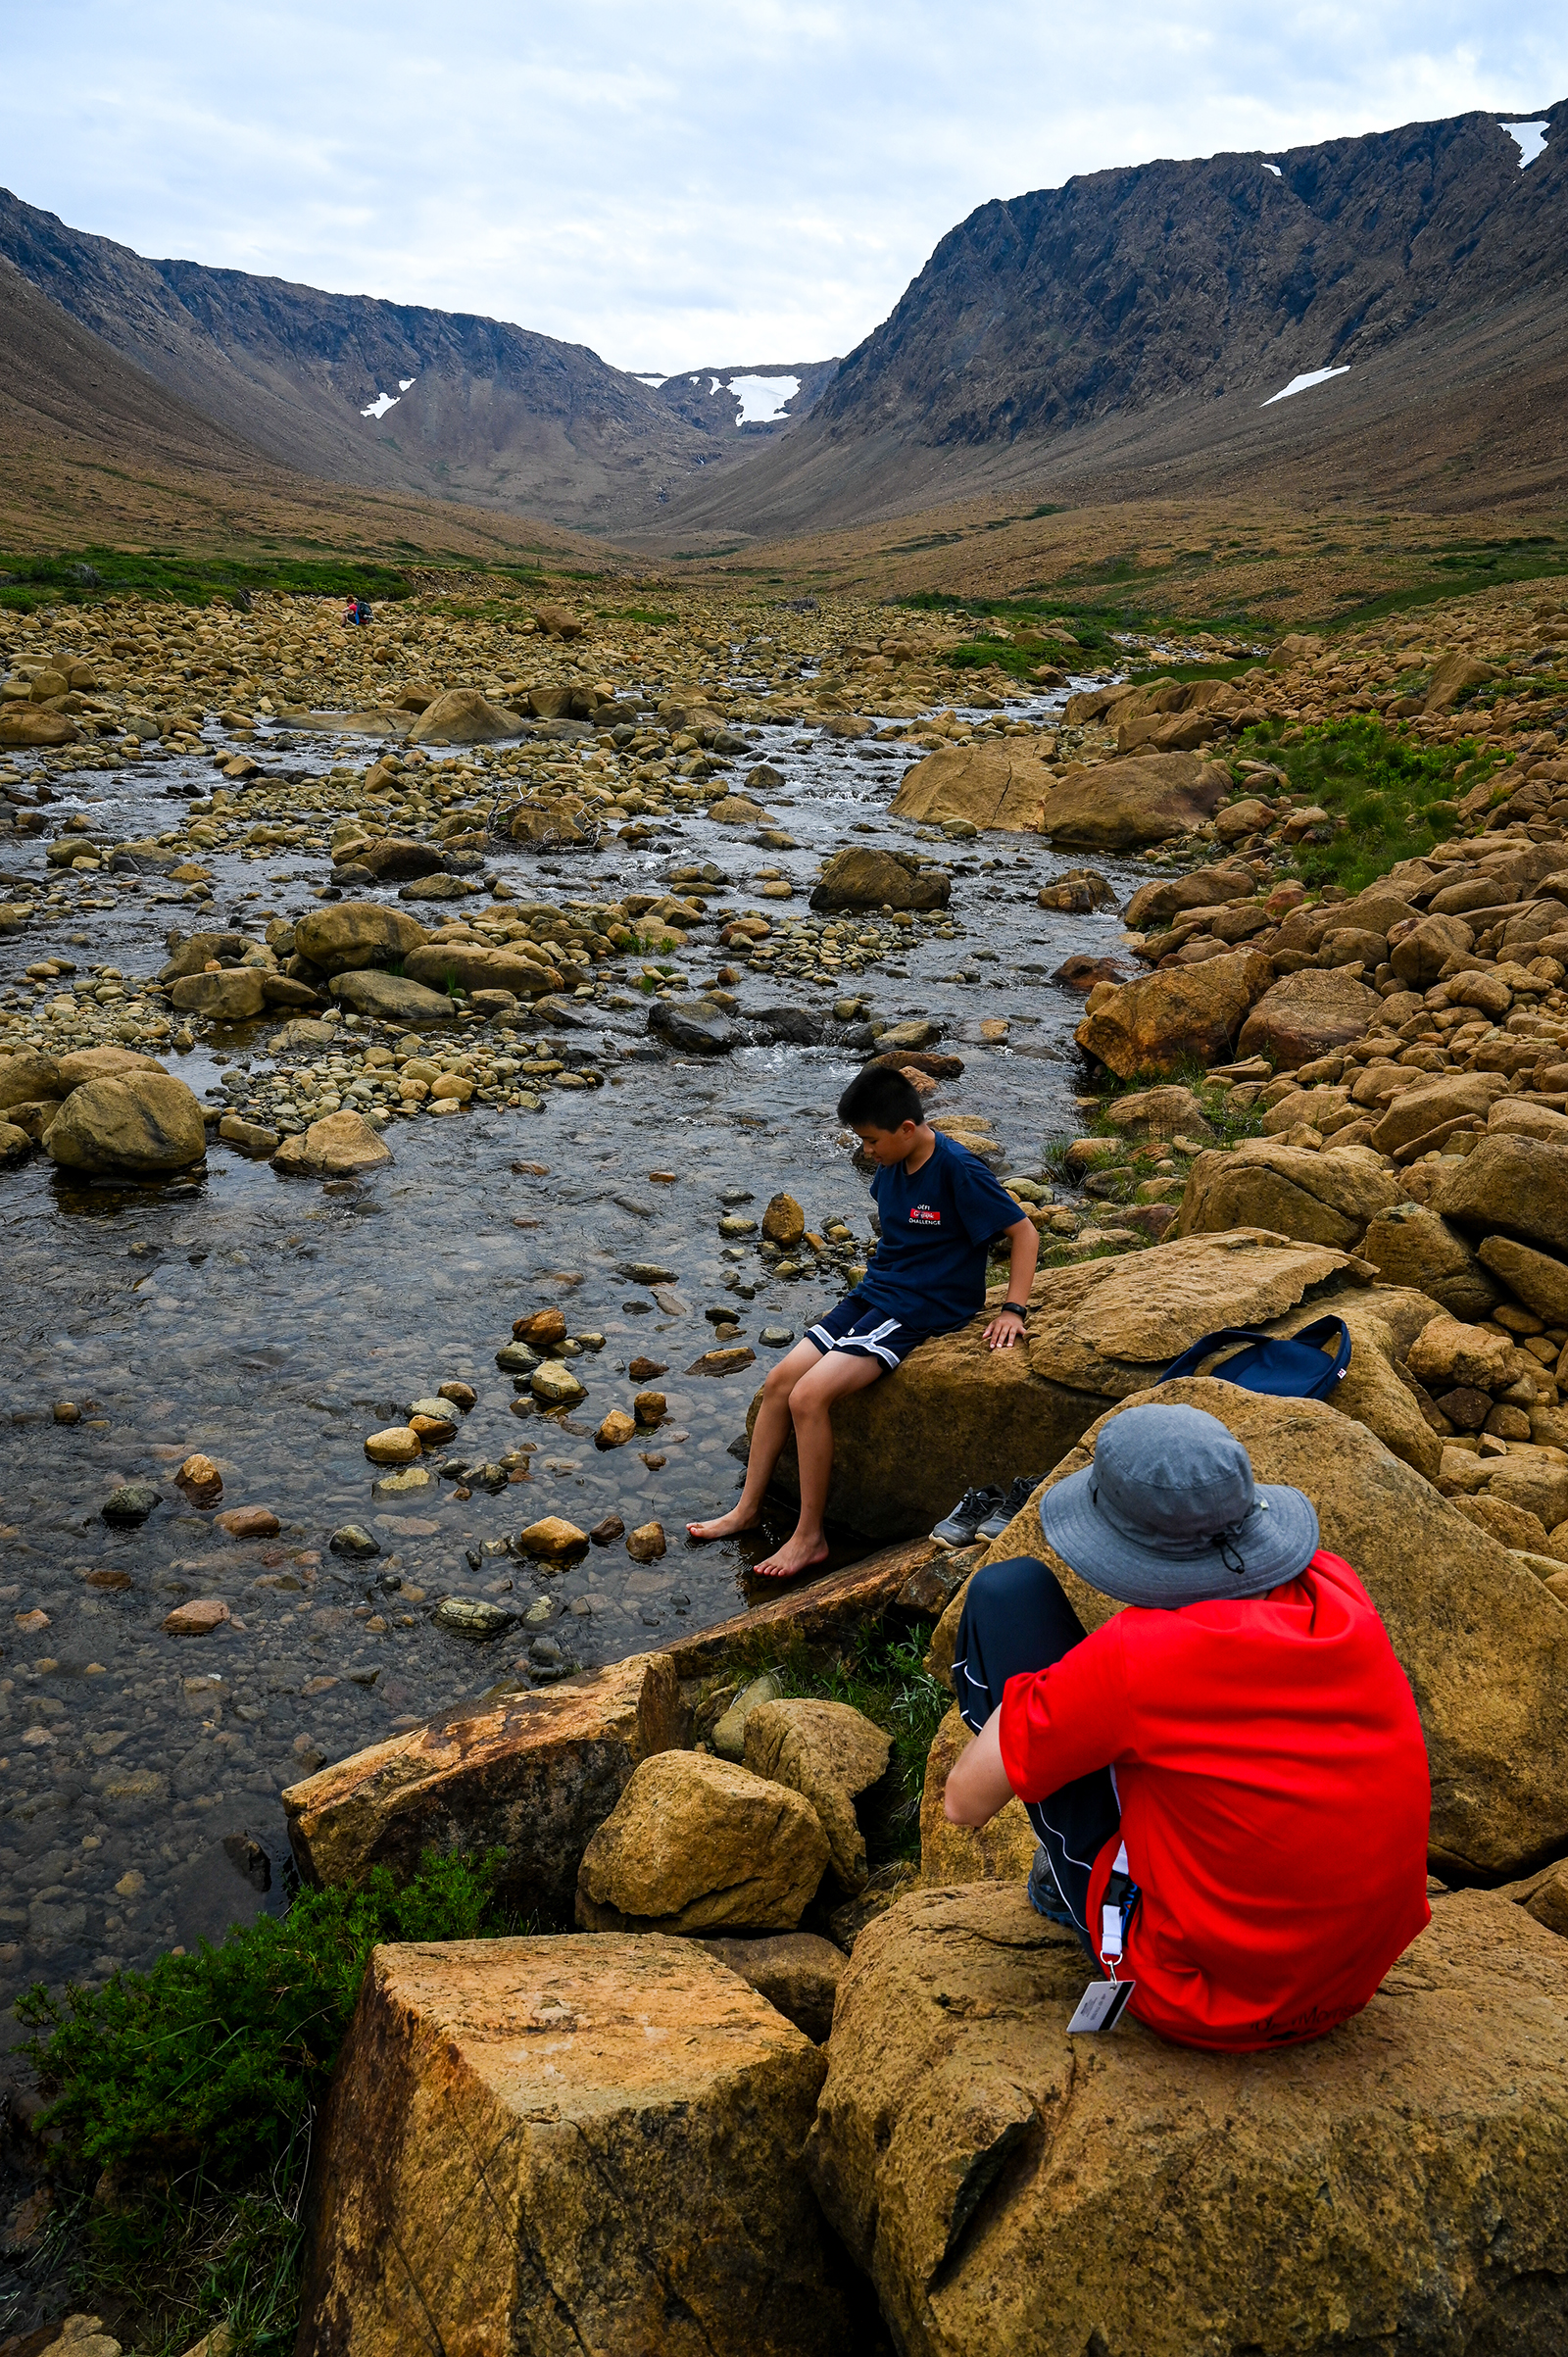 Tablelands, Gros Morne National Park